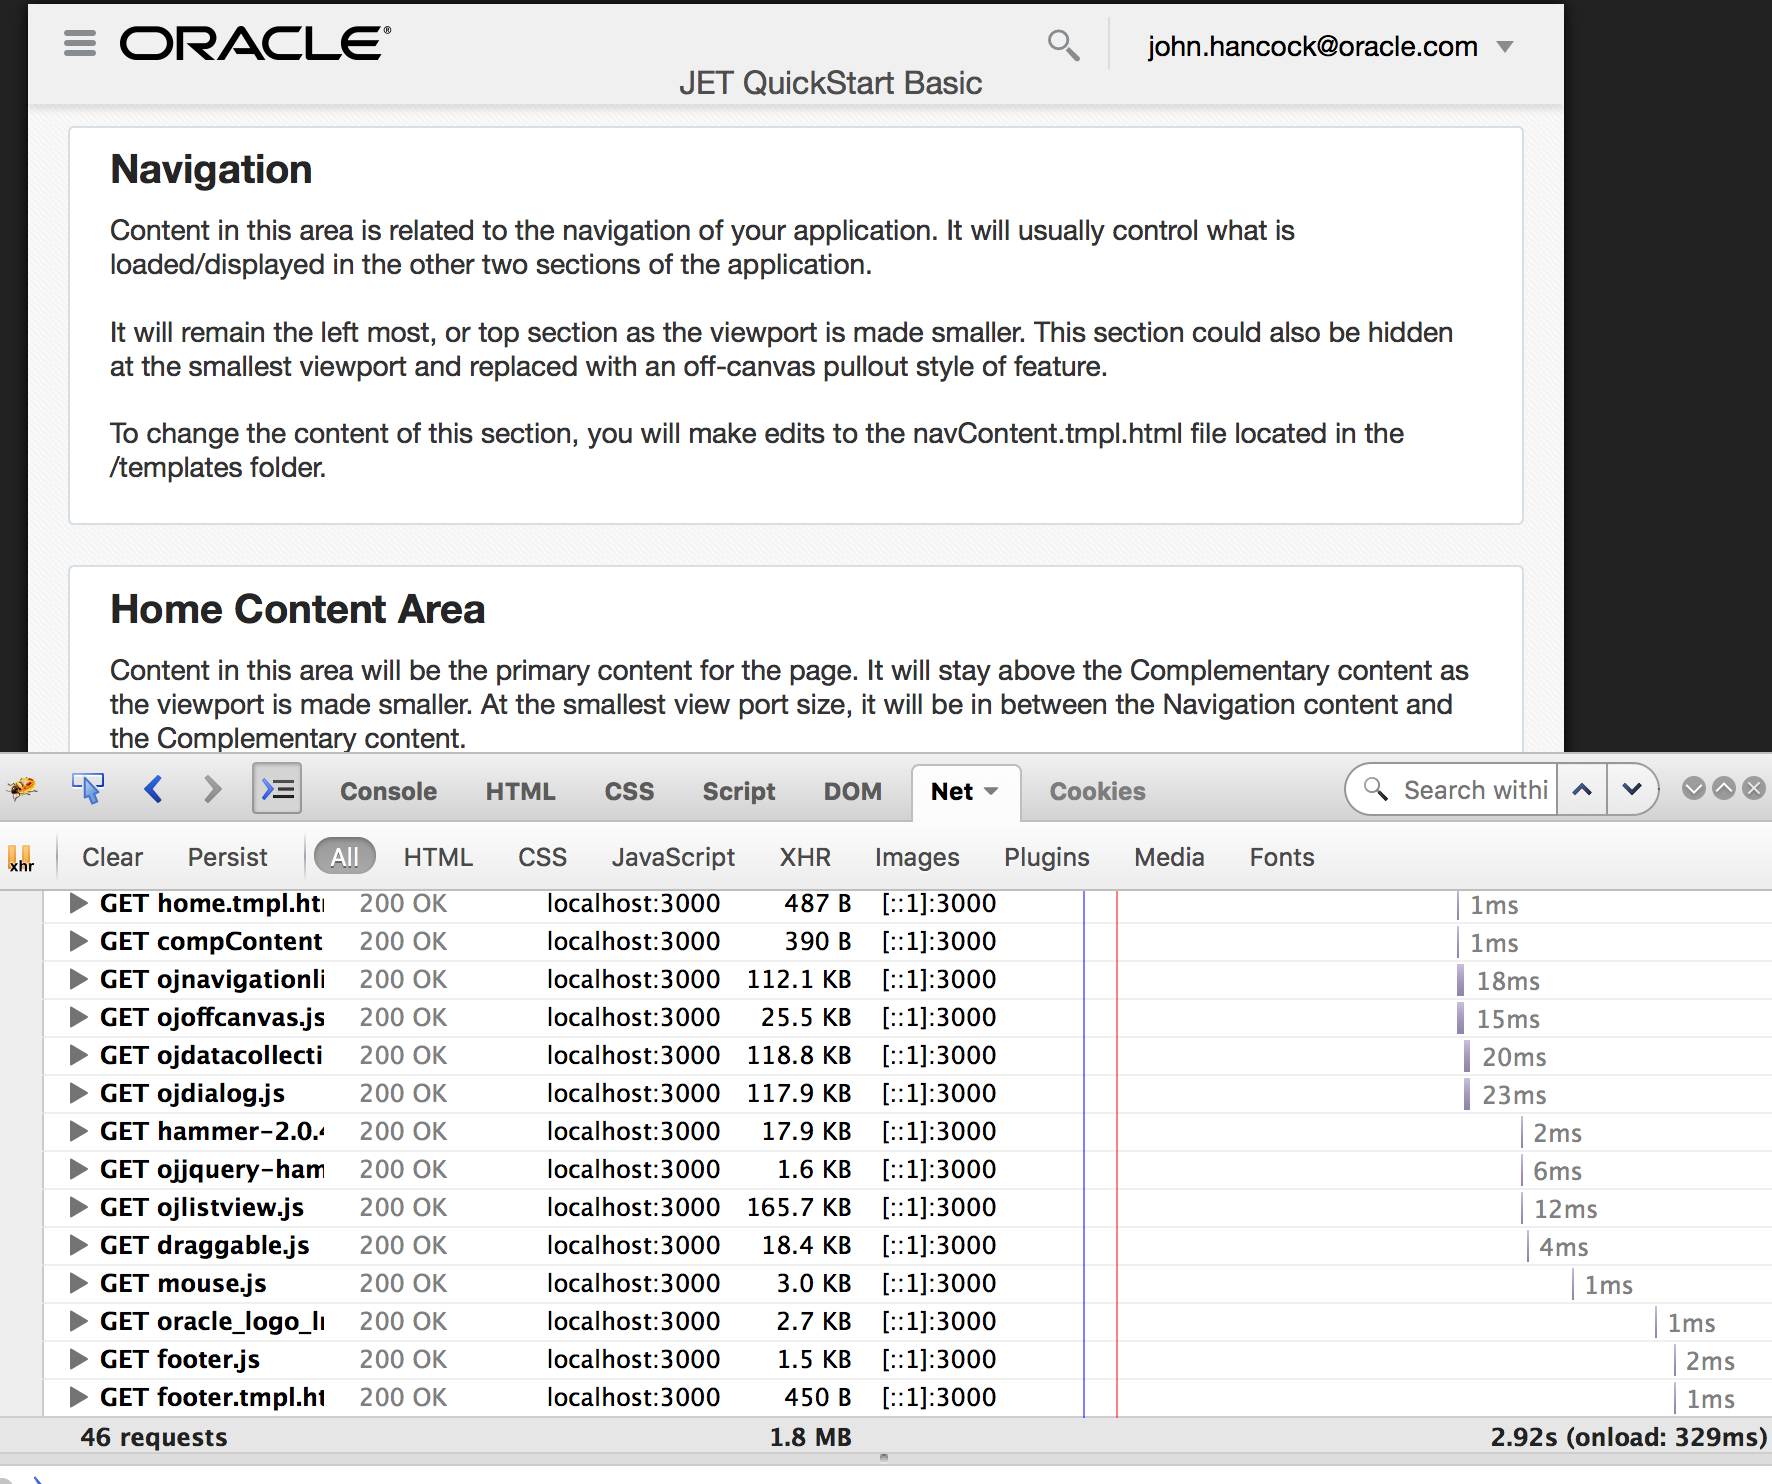 Optimize Oracle JET | A-Team Chronicles